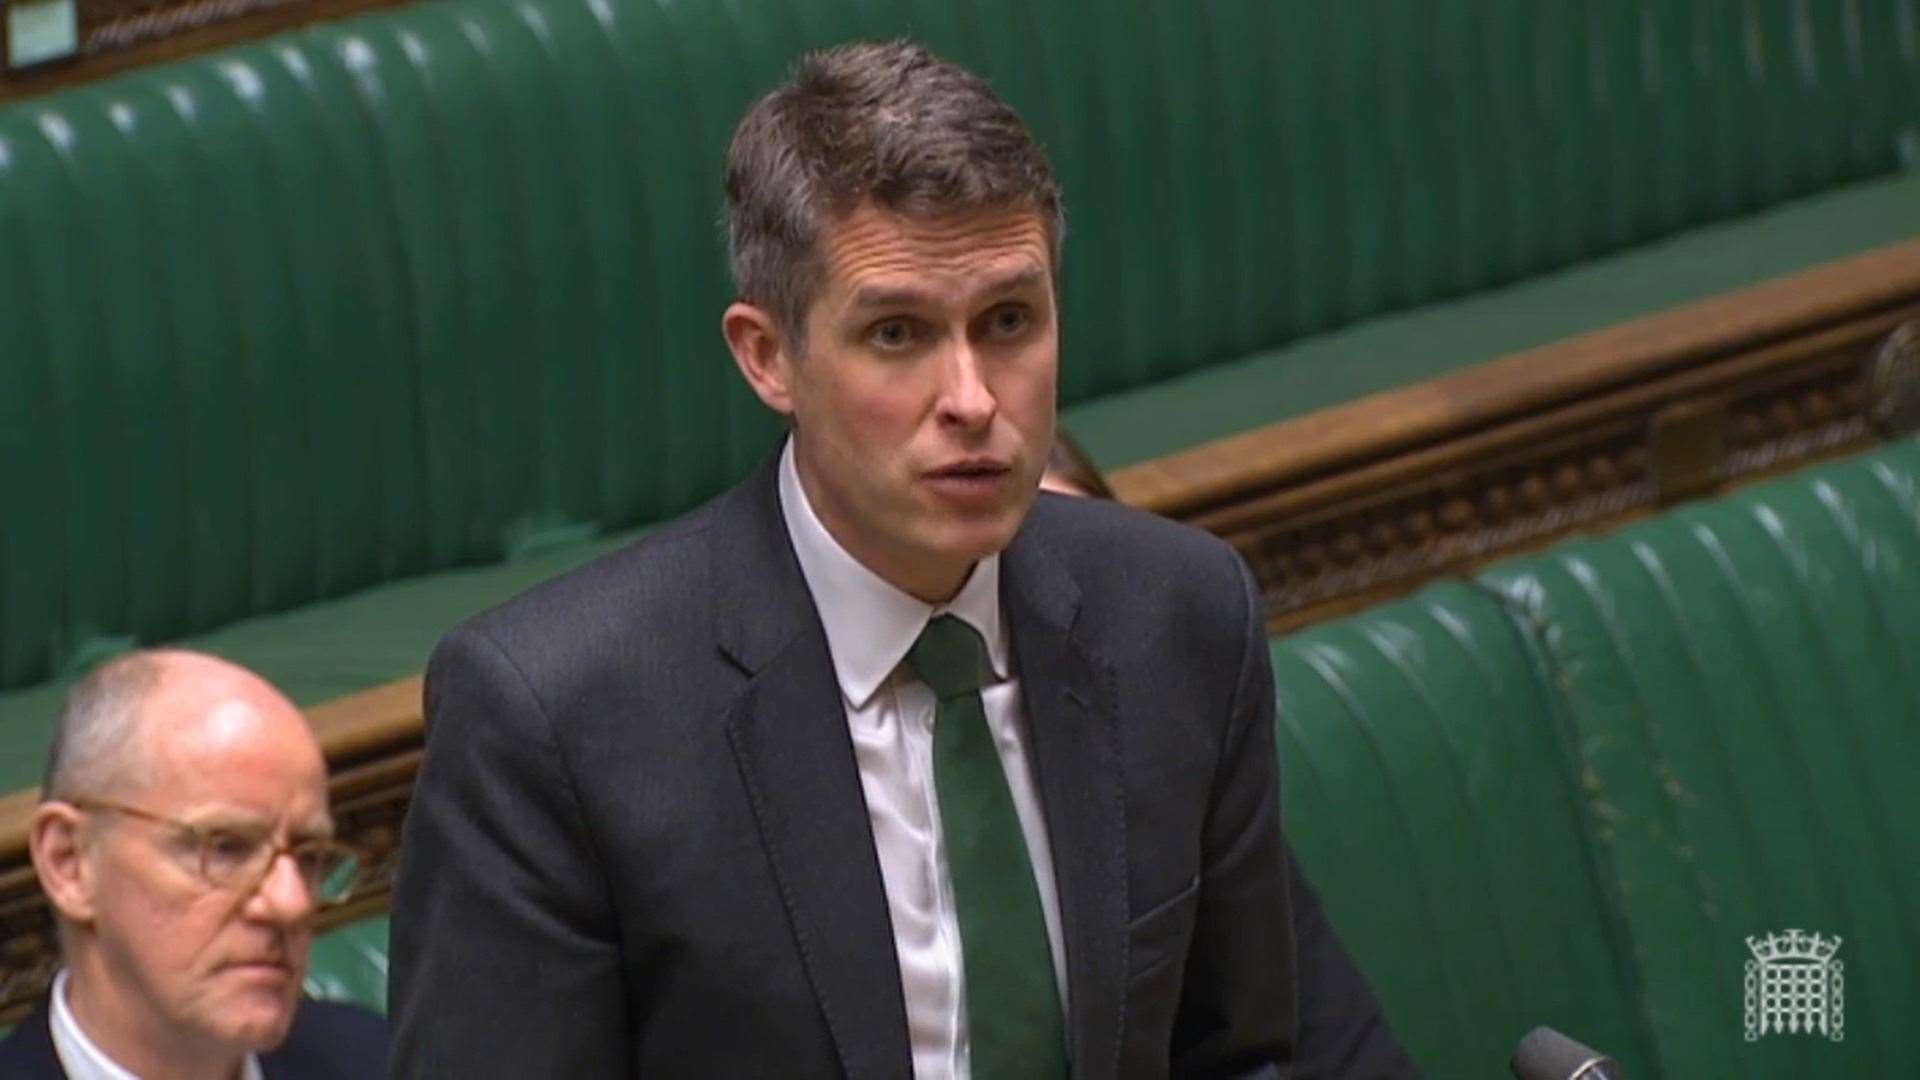 The U-turn comes after a very tough couple of weeks for Education Secretary Gavin Williamson